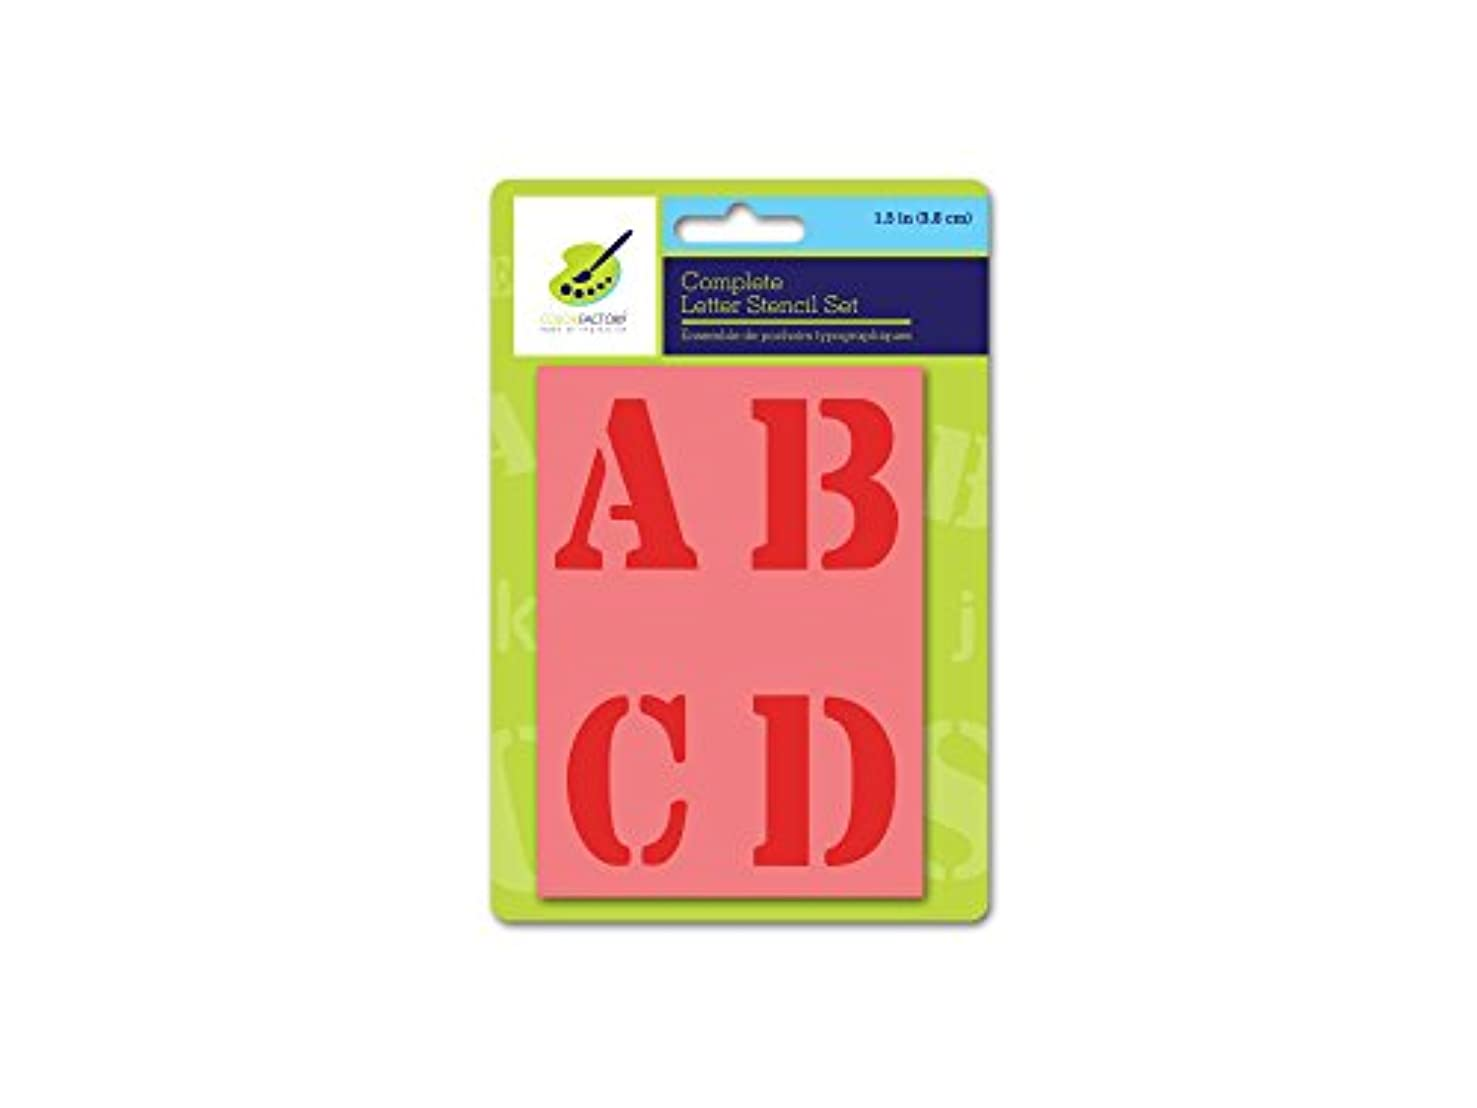 Color Factory PA718B Complete Letter Stencil Sets, 1.5in, 1.5